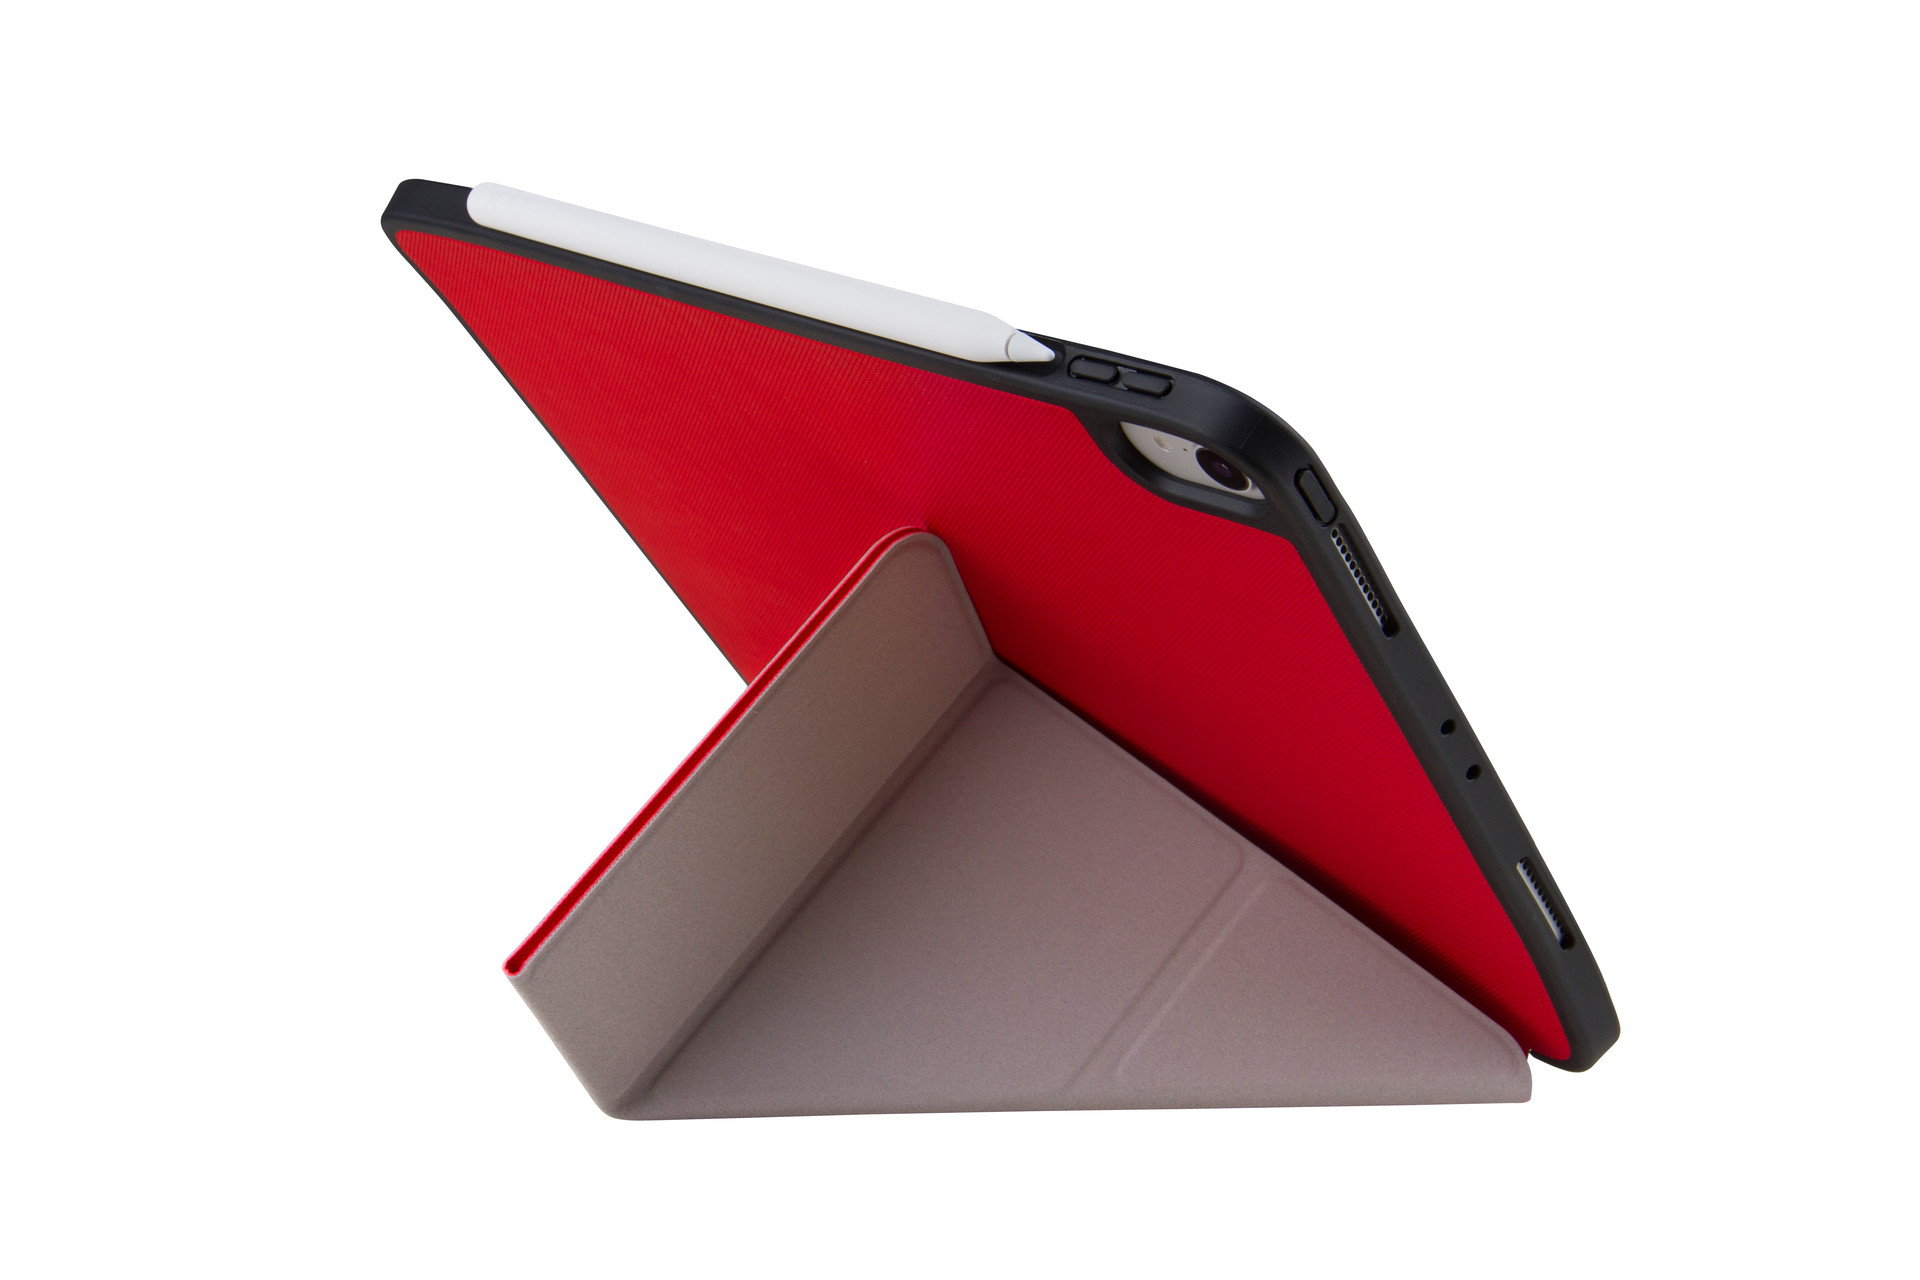 UNIQ TRANSFORMA RIGOR PLUS NEW IPAD PRO 11 (2018) - CORAL (RED)